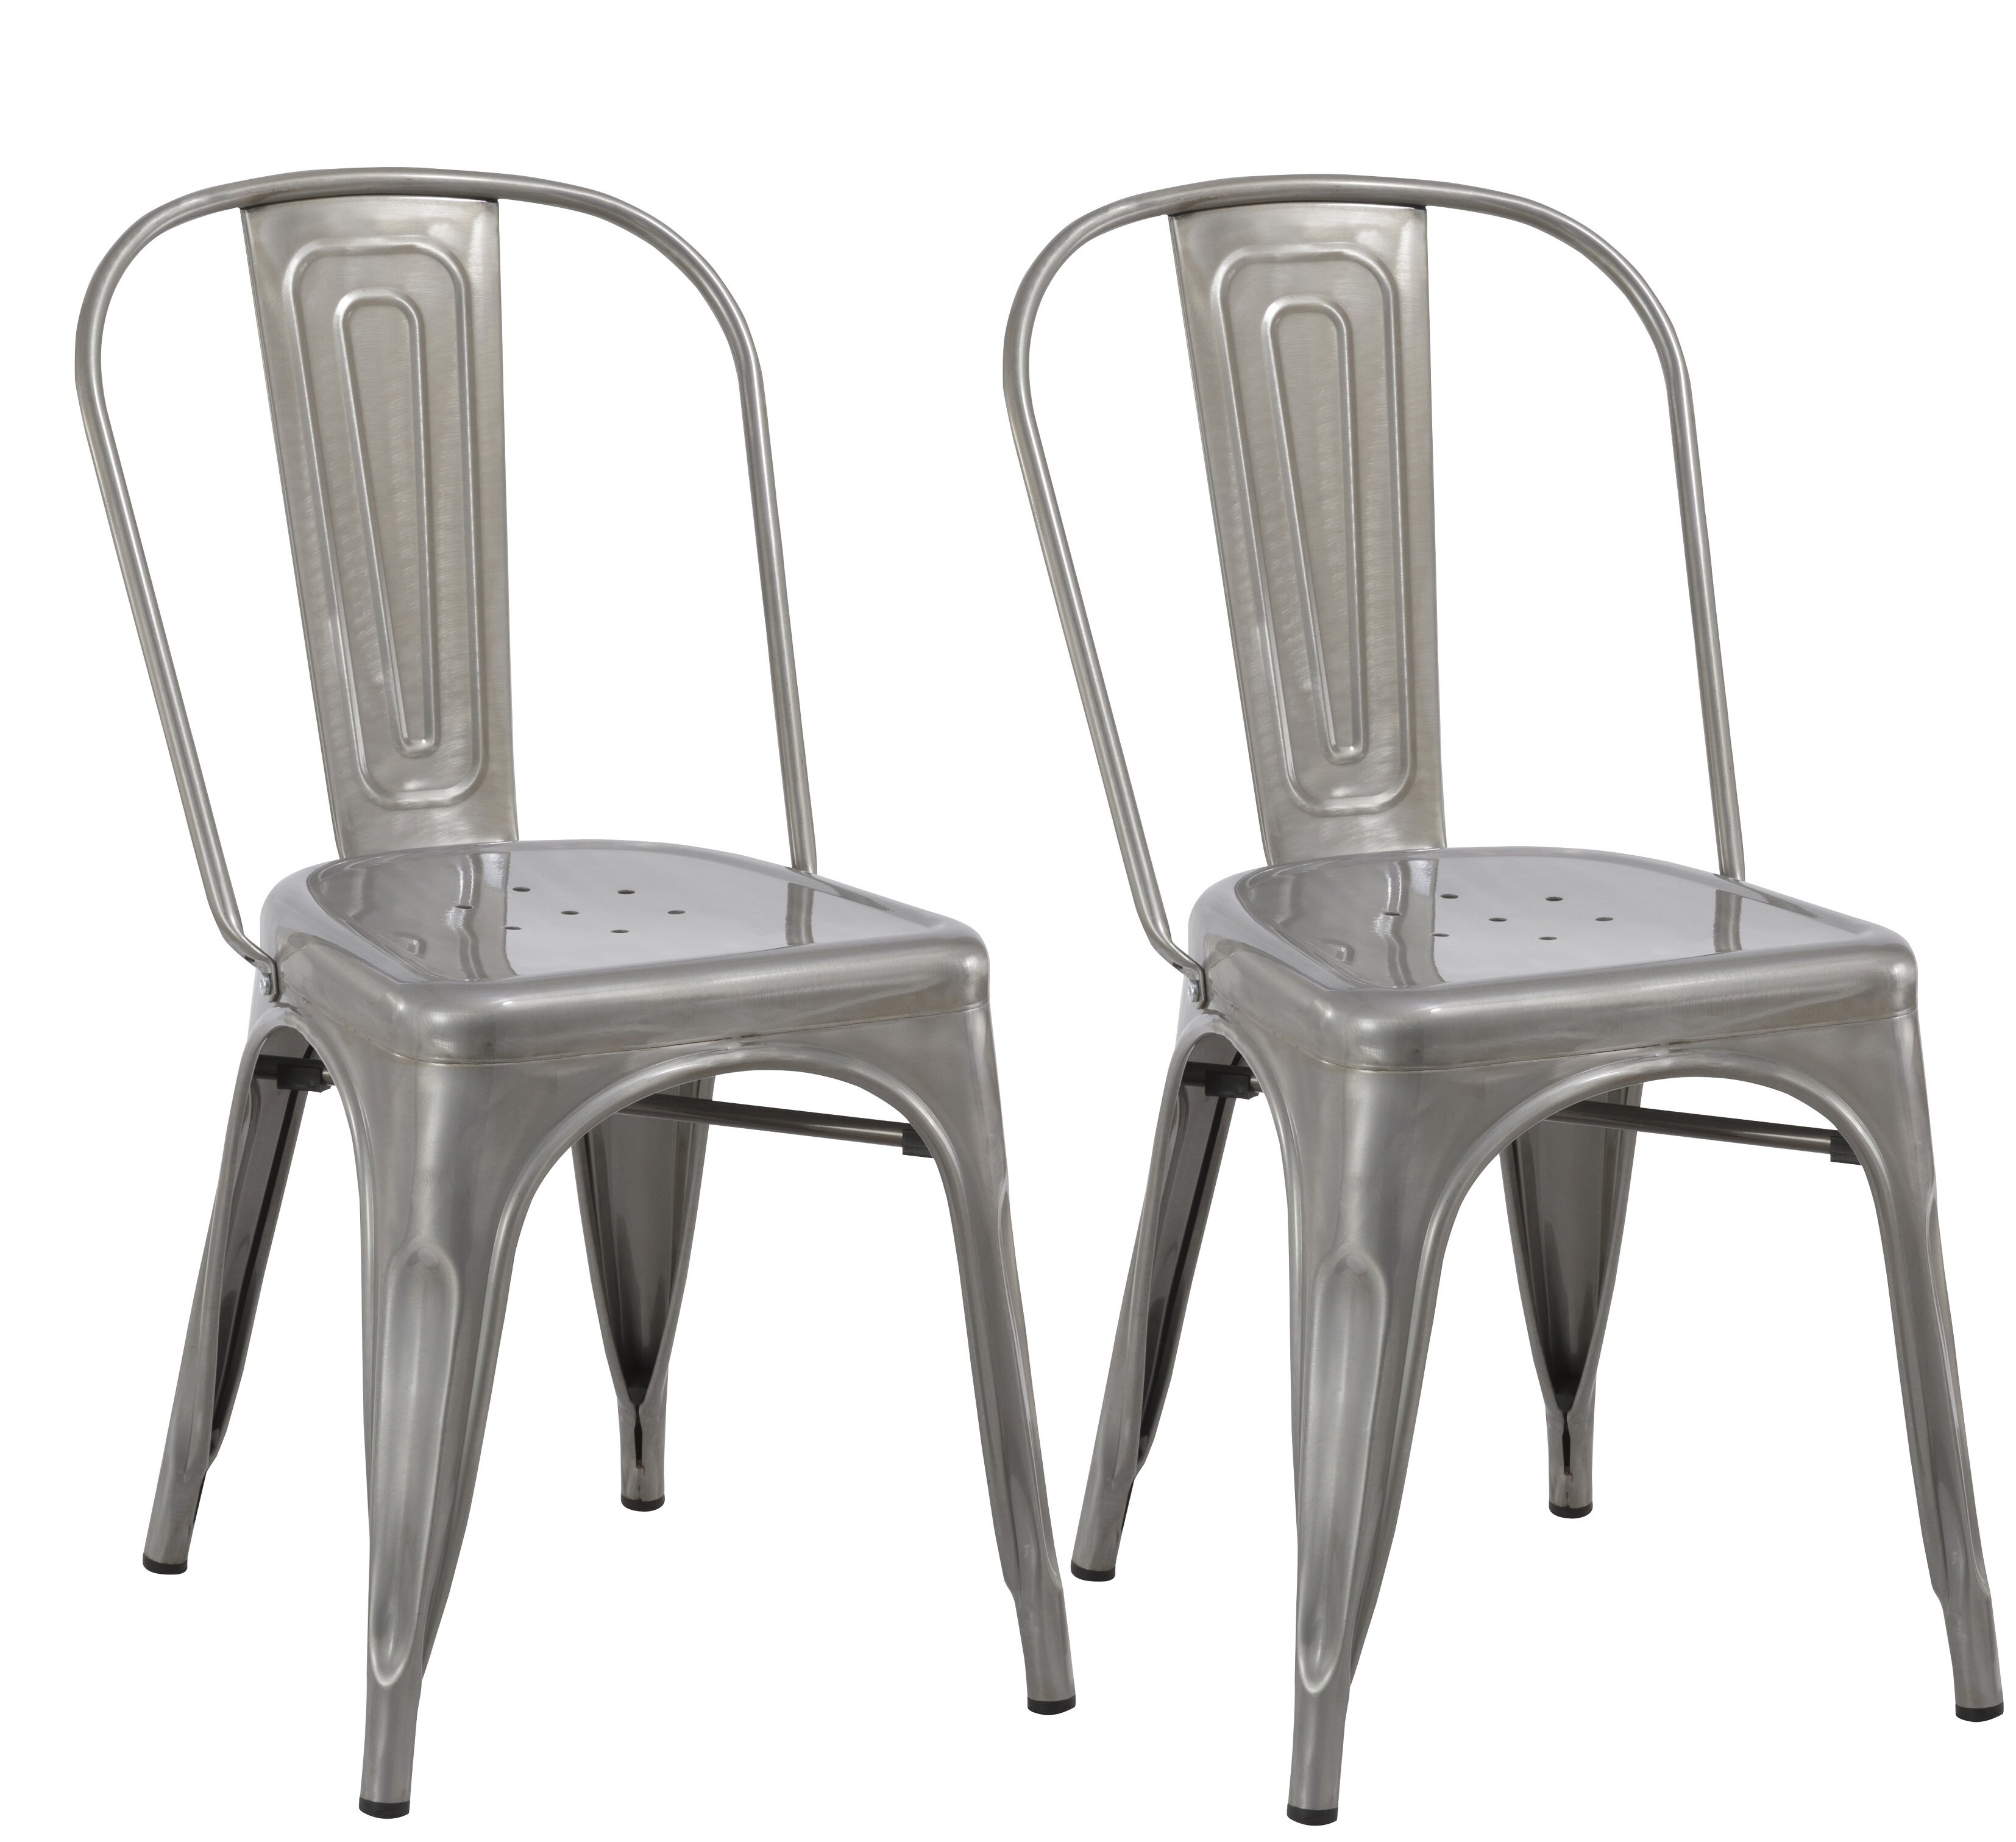 FamisCorp Industrial Metal Bistro Stackable Cafe Dining Chair Wayfair - Metal cafe table and chairs